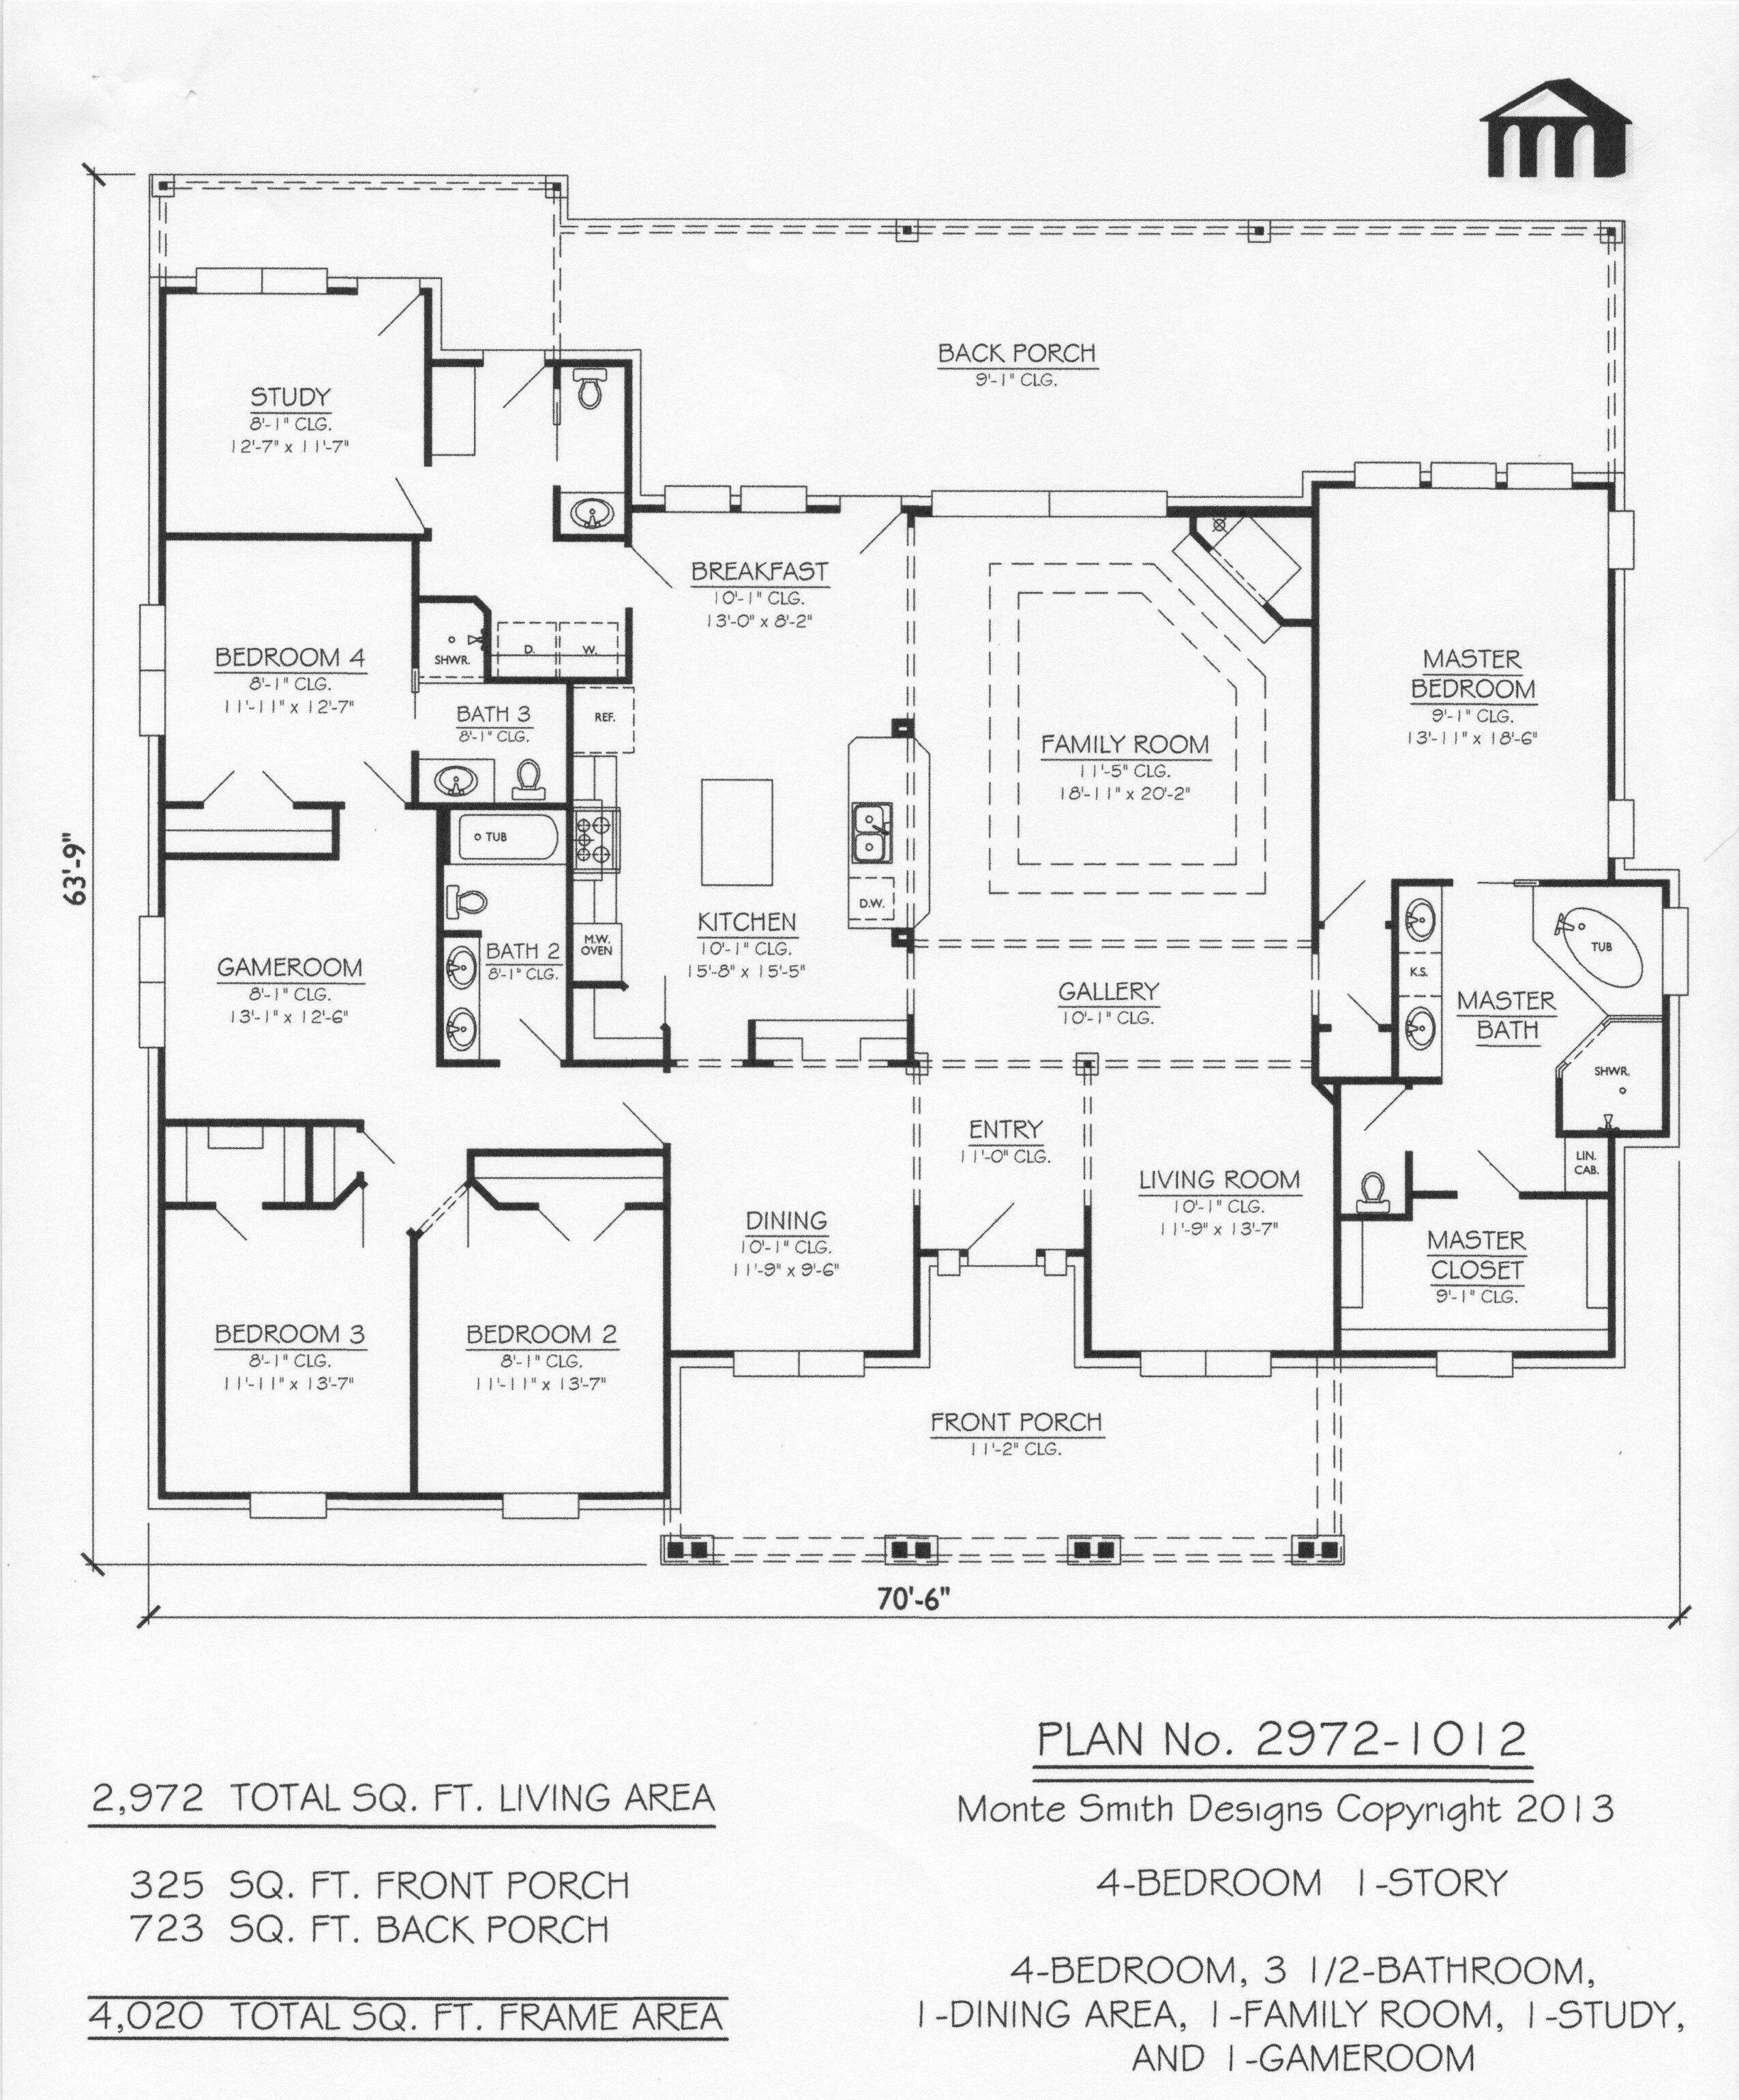 2972 1012 Monte Smith Designs House Plans How To Plan Dream